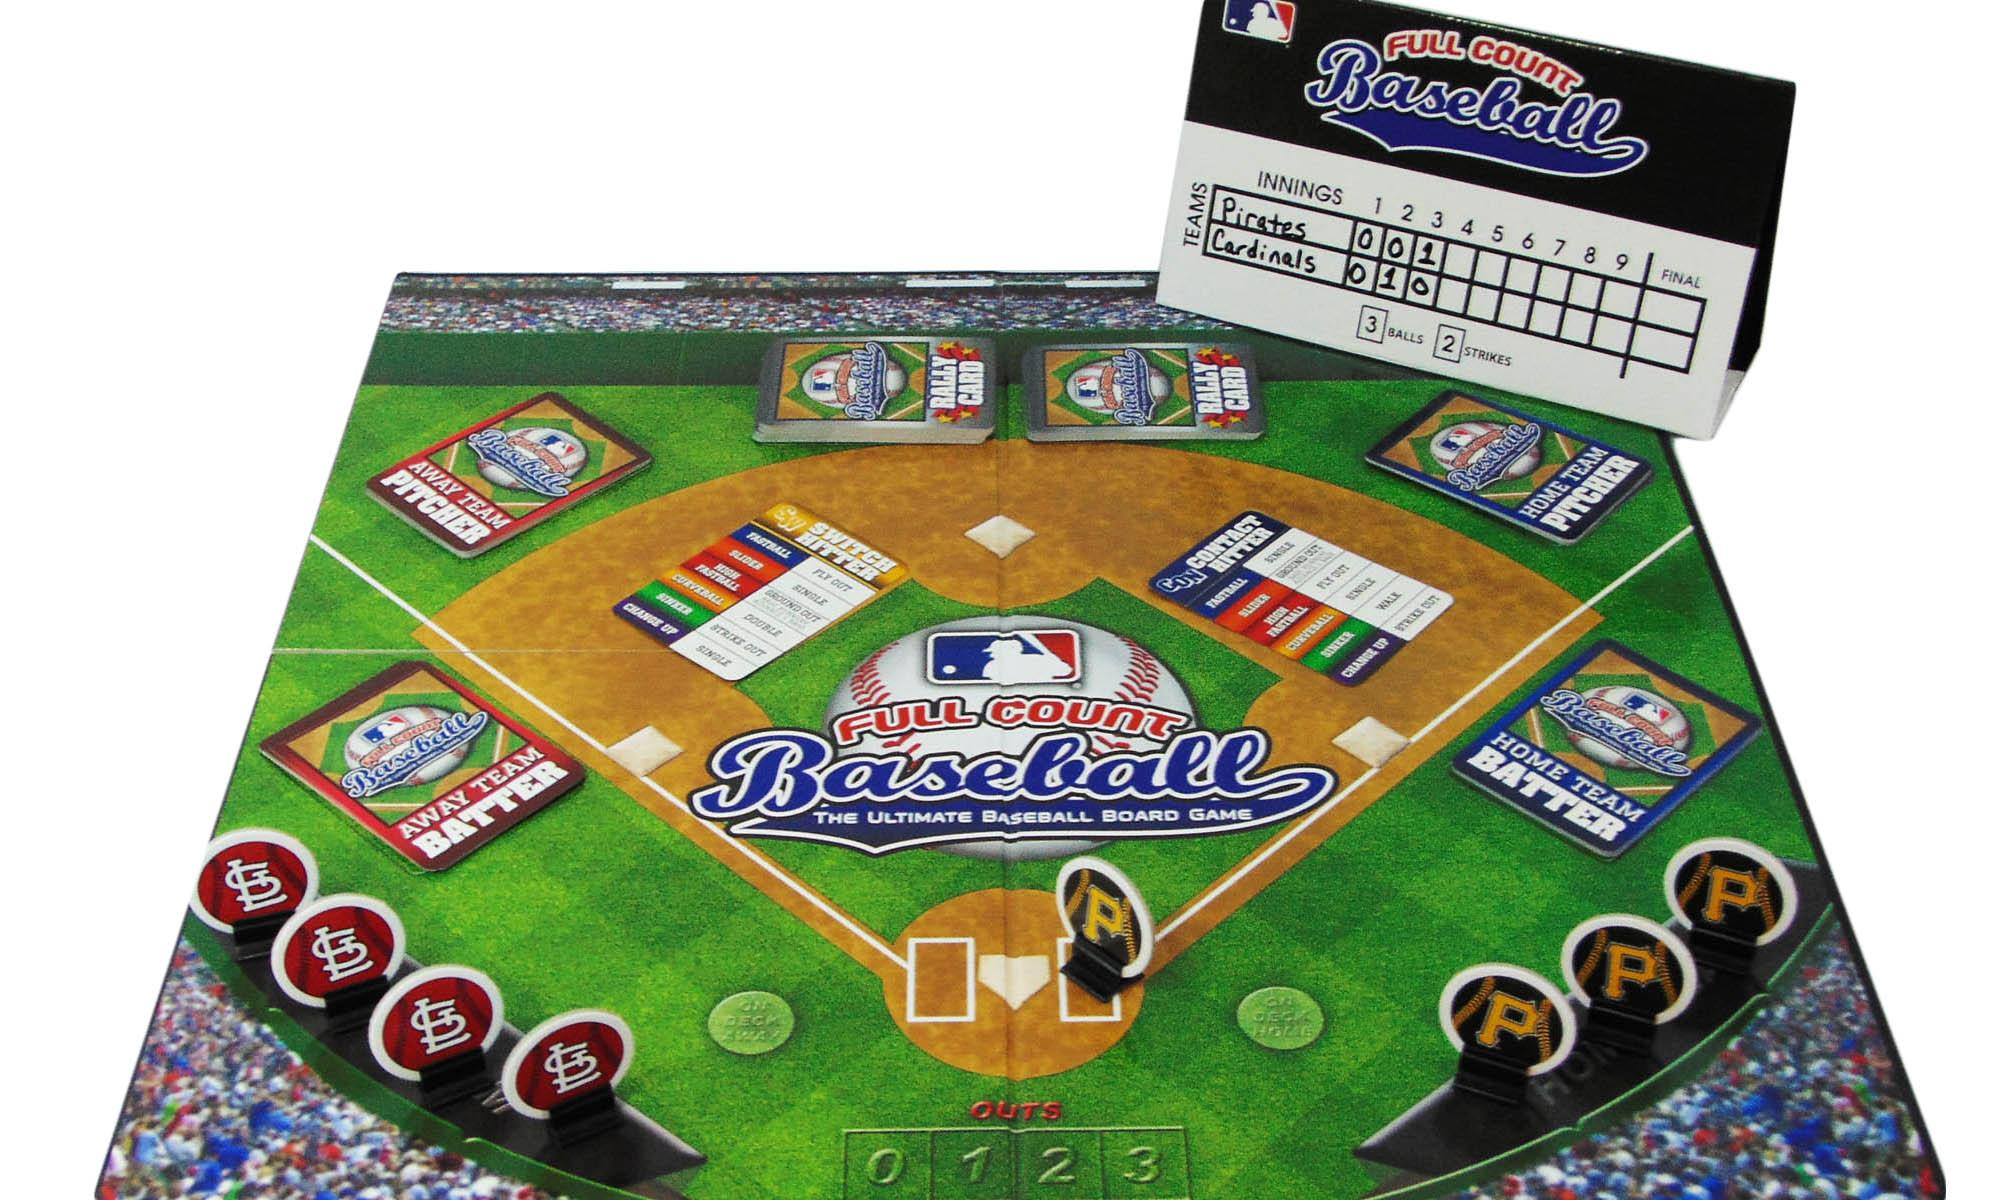 baseball game feedback Free android app free iphone app how to read lines frequently asked questions add scoresandodds to your site free email newsletter parlay calculator top news top stats trends feedback mlb baseball games monday,april 16 2018 time game information info 7:05 pm feedback the activities.